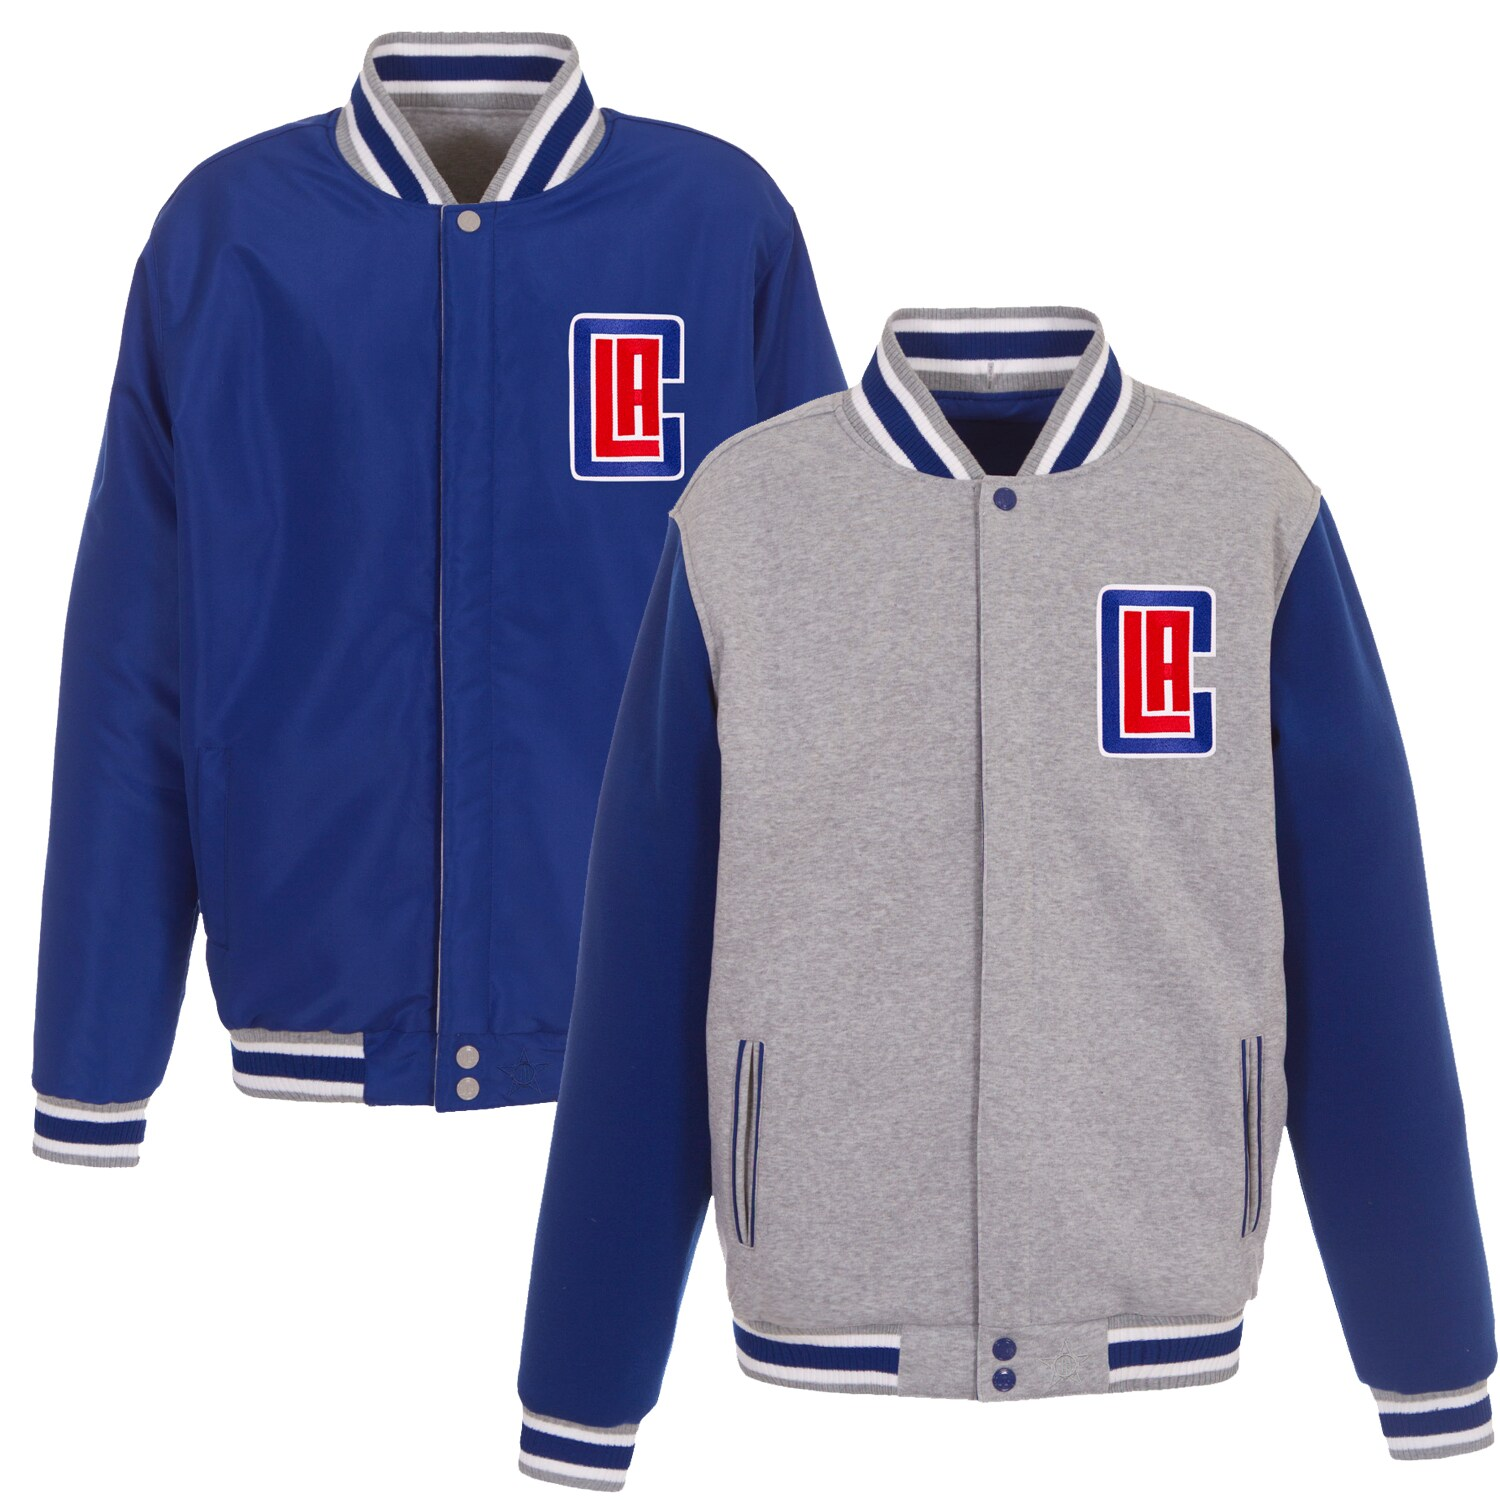 LA Clippers JH Design Embroidered Logo Reversible Fleece Full-Snap Jacket - Gray/Royal